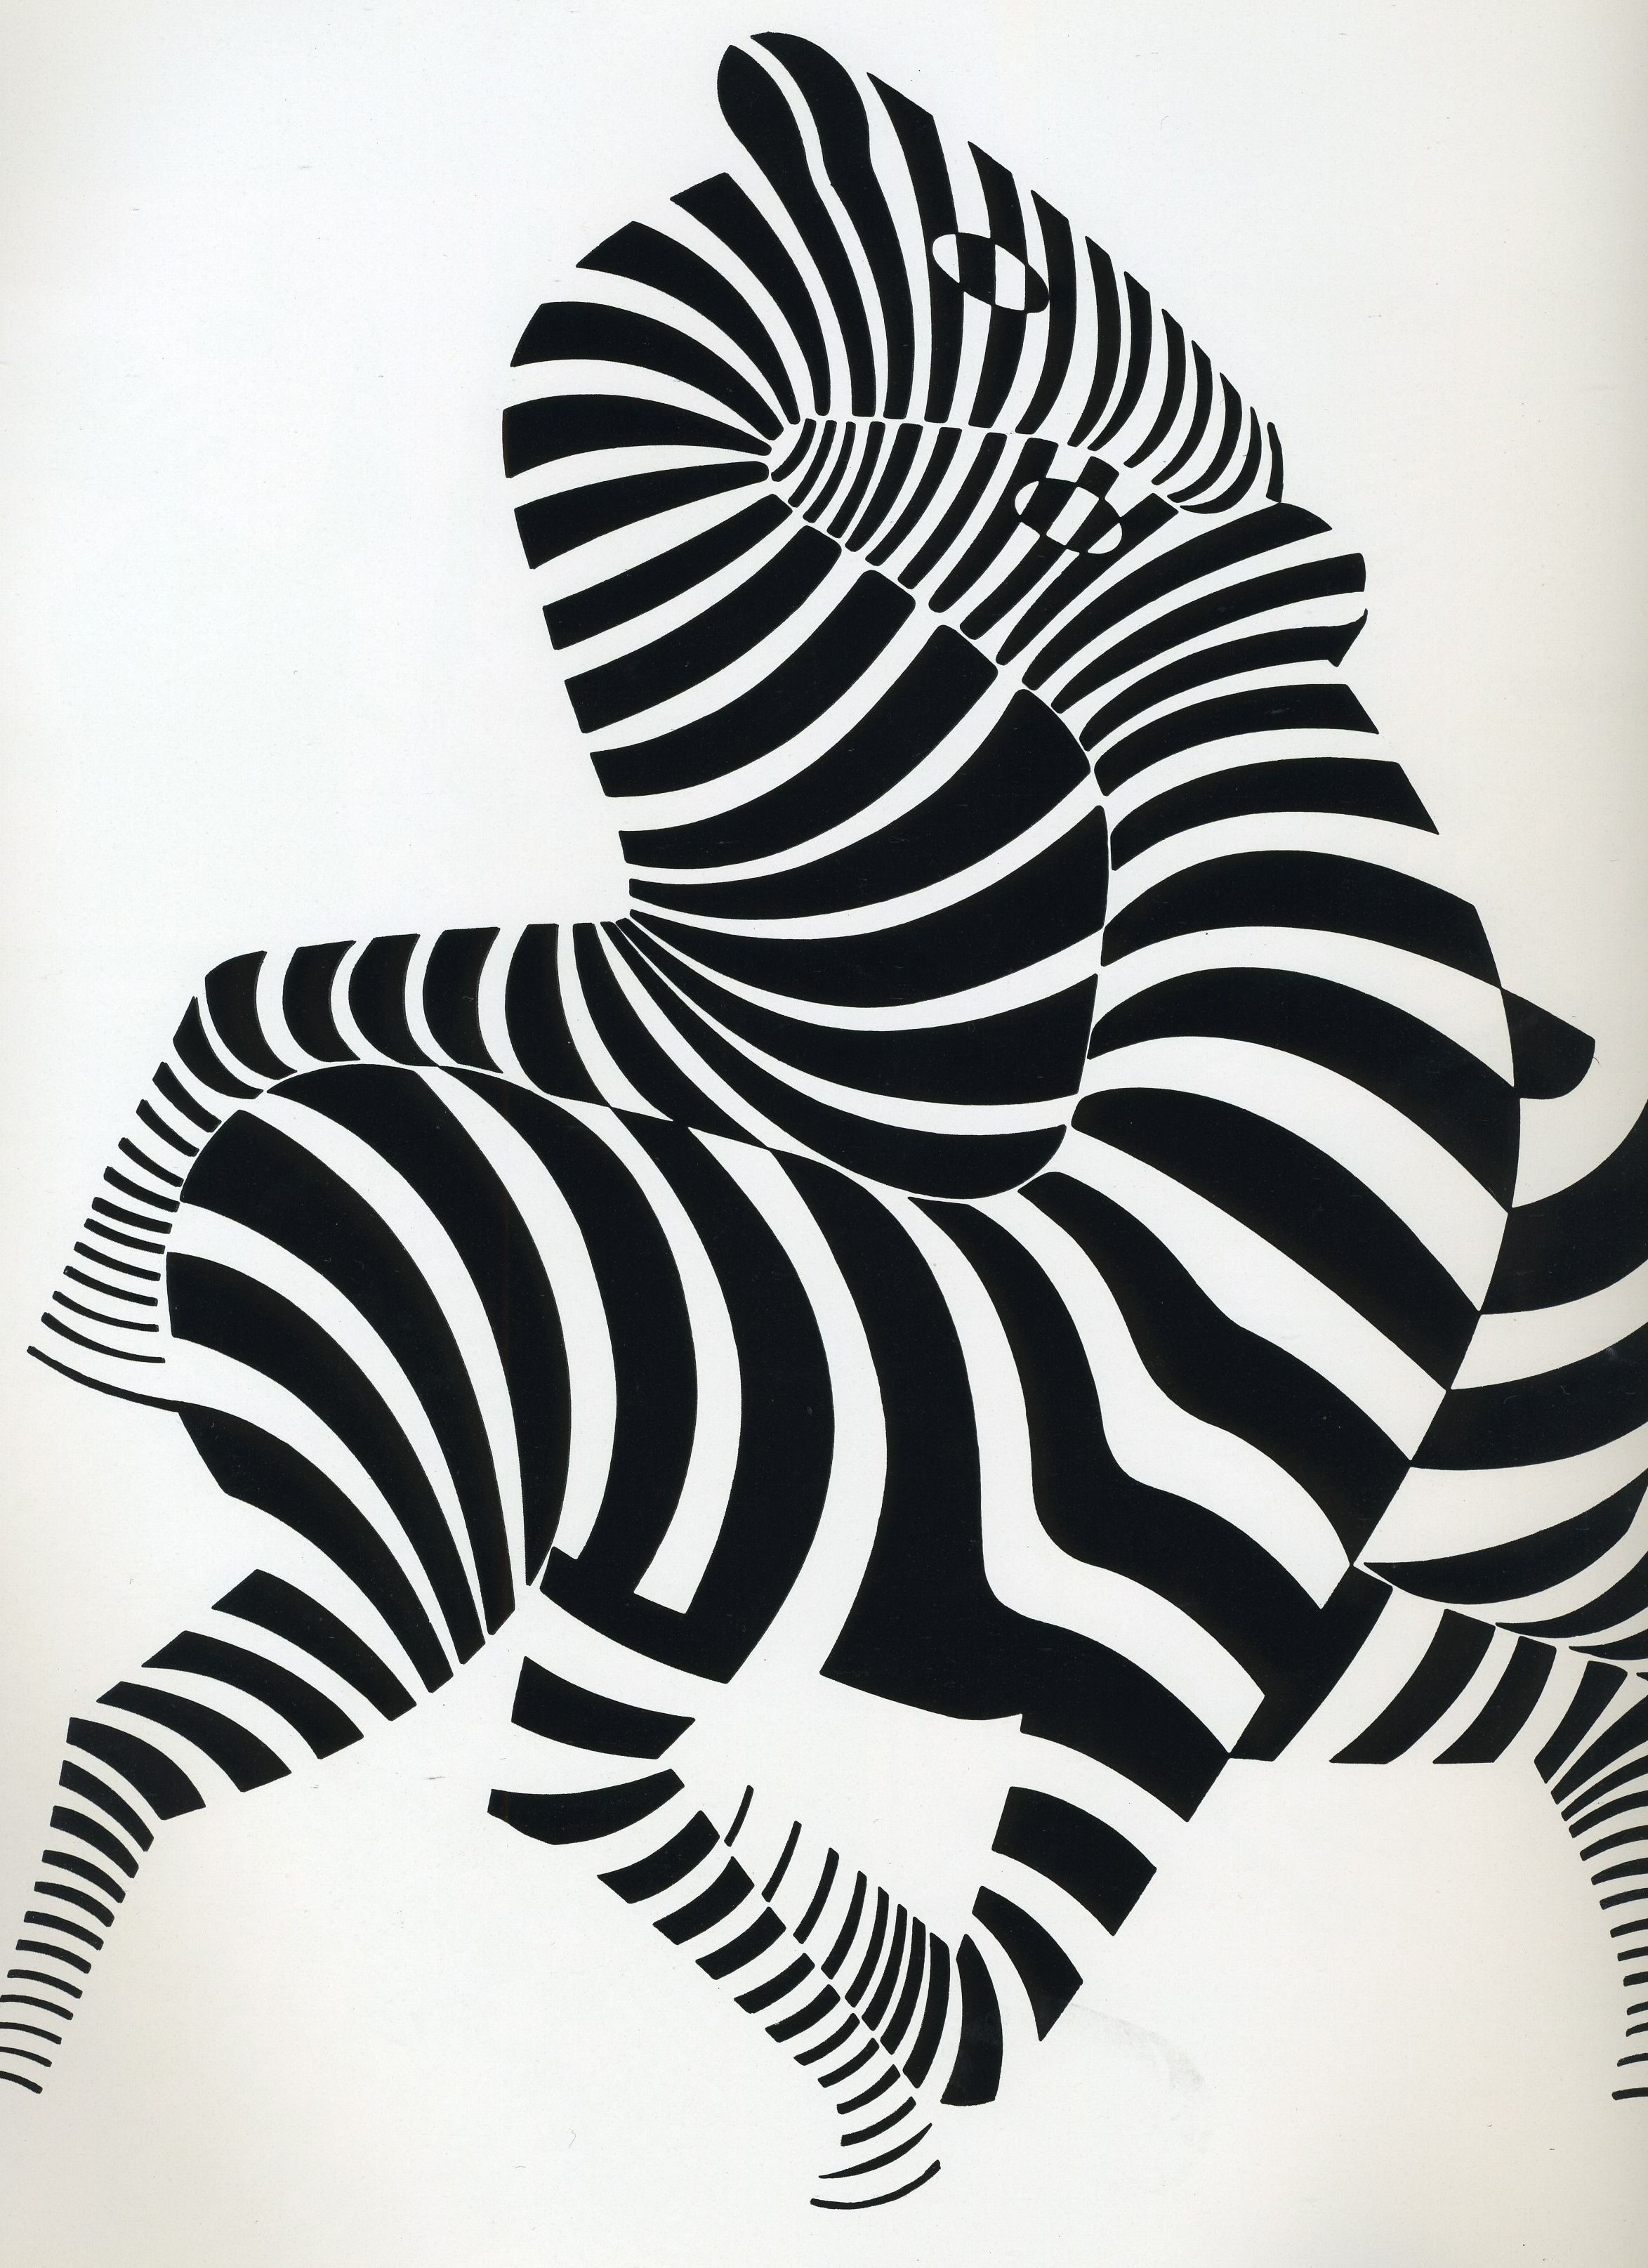 Zebras positive negative space pattern by artist victor vasarely zebras positive negative space pattern by artist victor vasarely altavistaventures Images